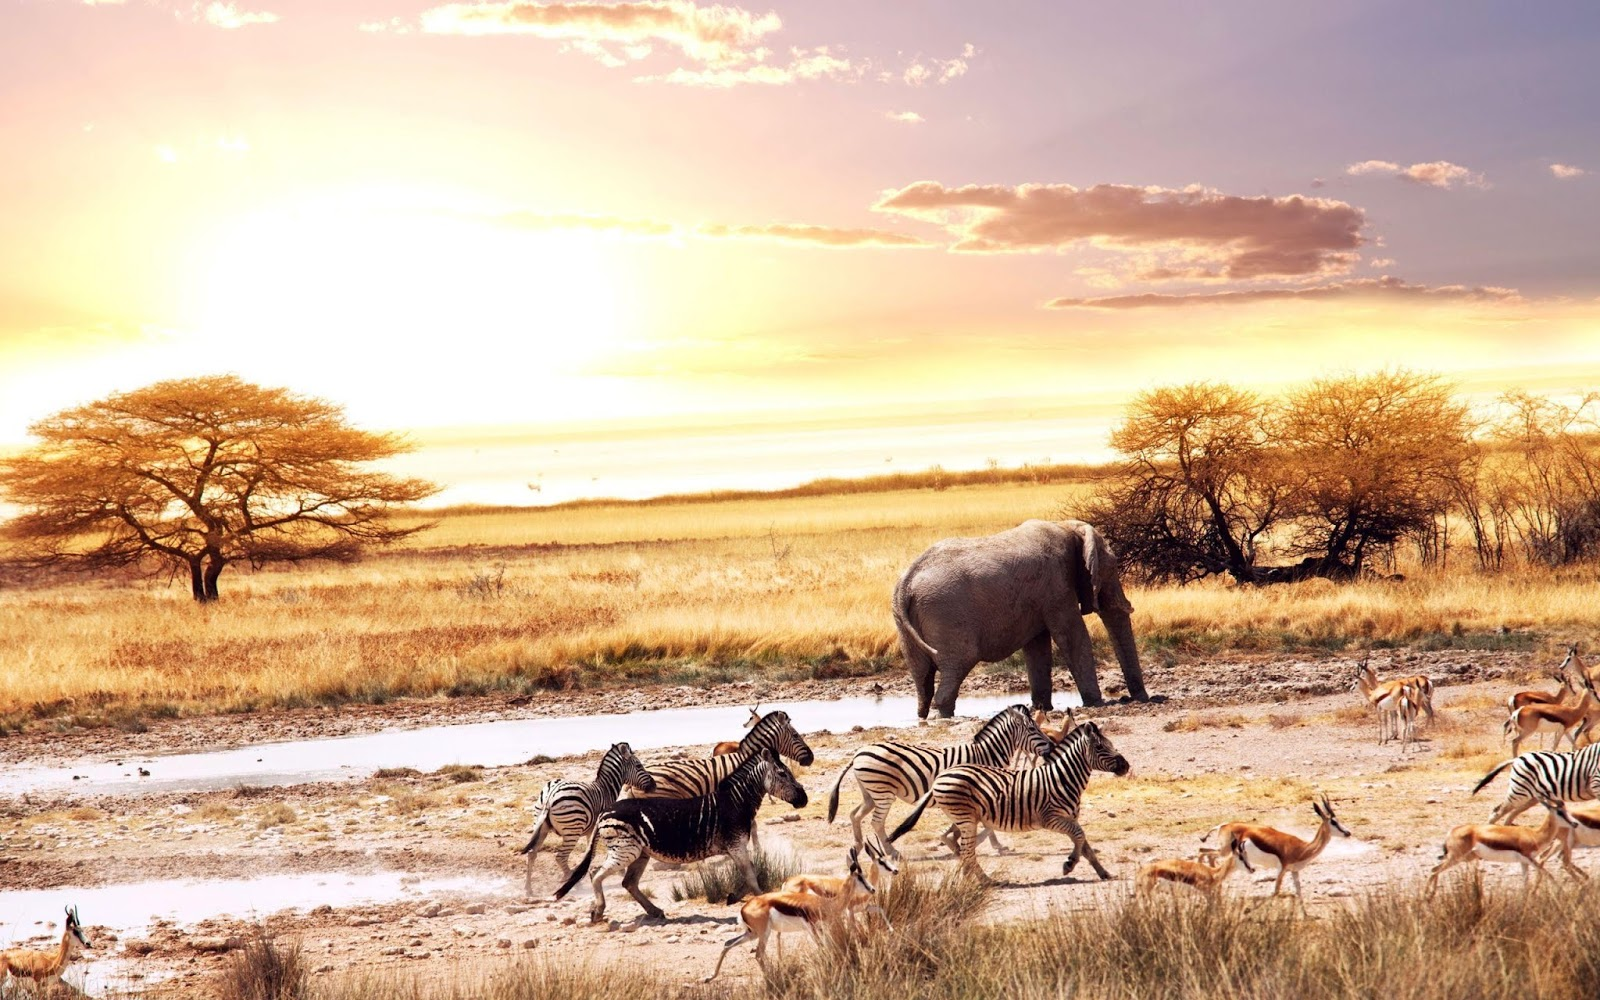 Wild Animals in Africa Wallpapers  Wallpapers